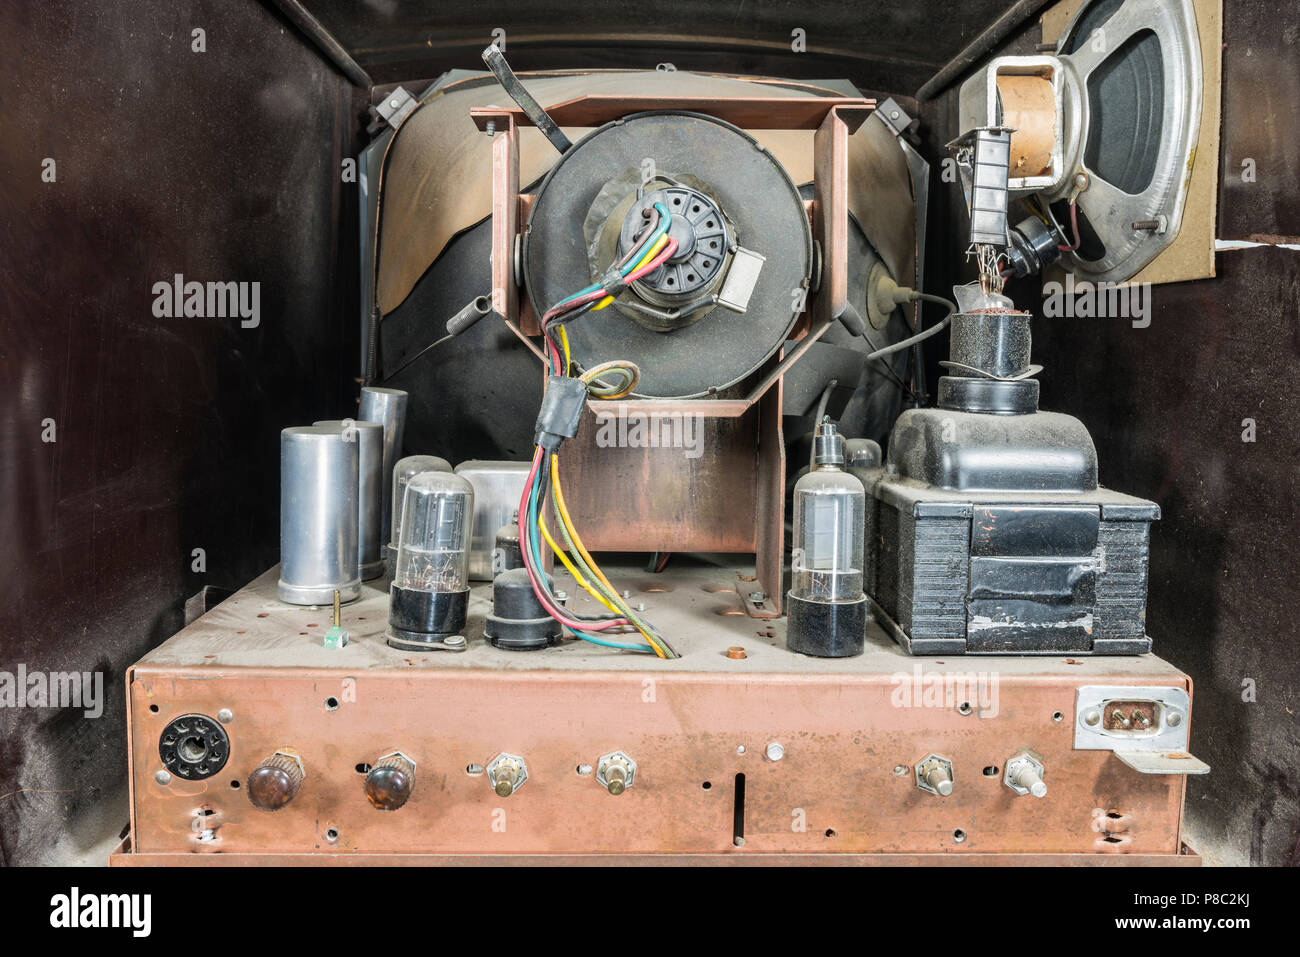 View inside dirty grungy vintage 1950s tube television set. - Stock Image